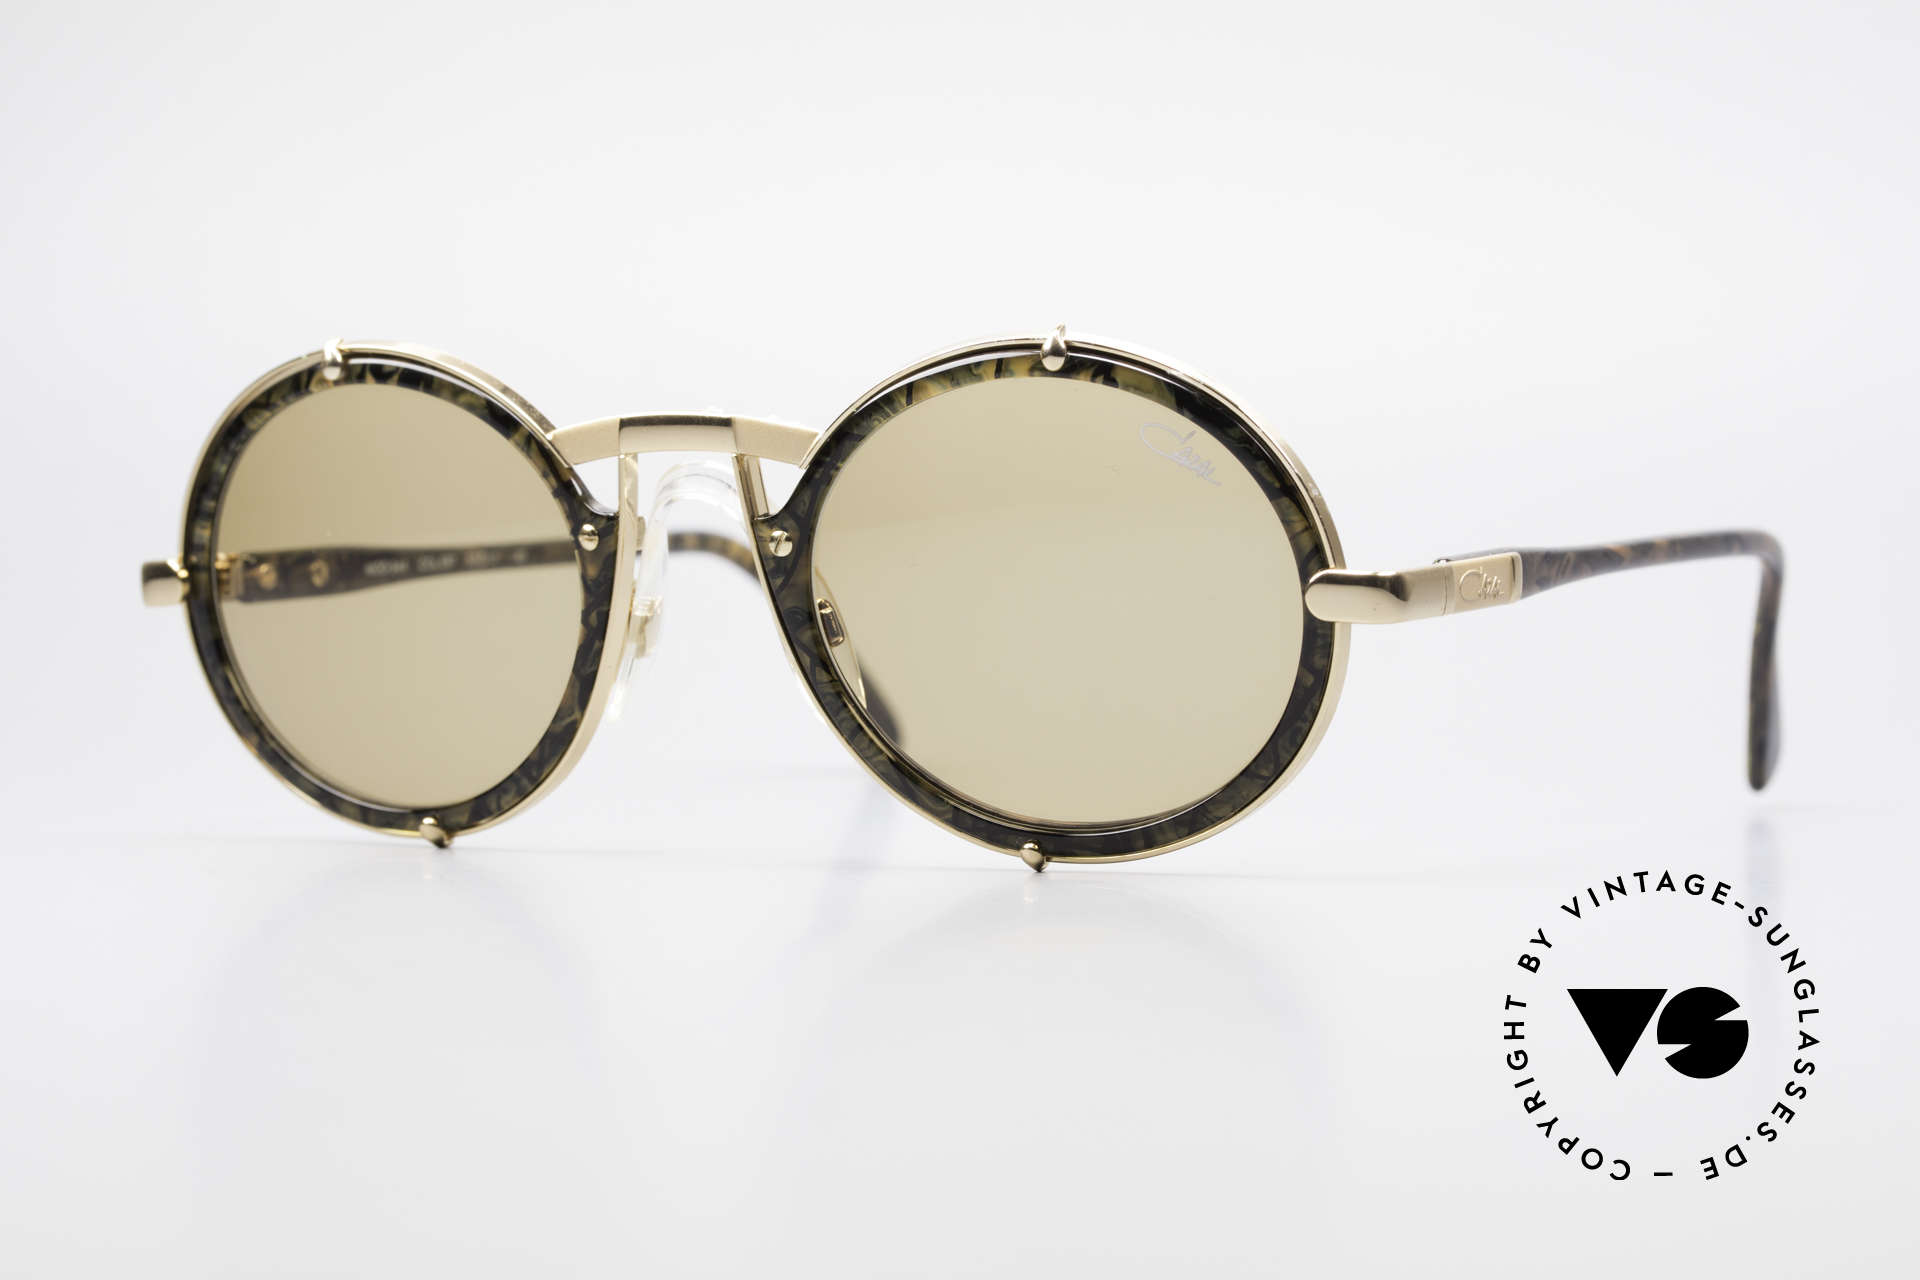 Cazal 644 Round 90's Cazal Sunglasses, vintage Cazal sunglasses from the early 1990's, Made for Men and Women